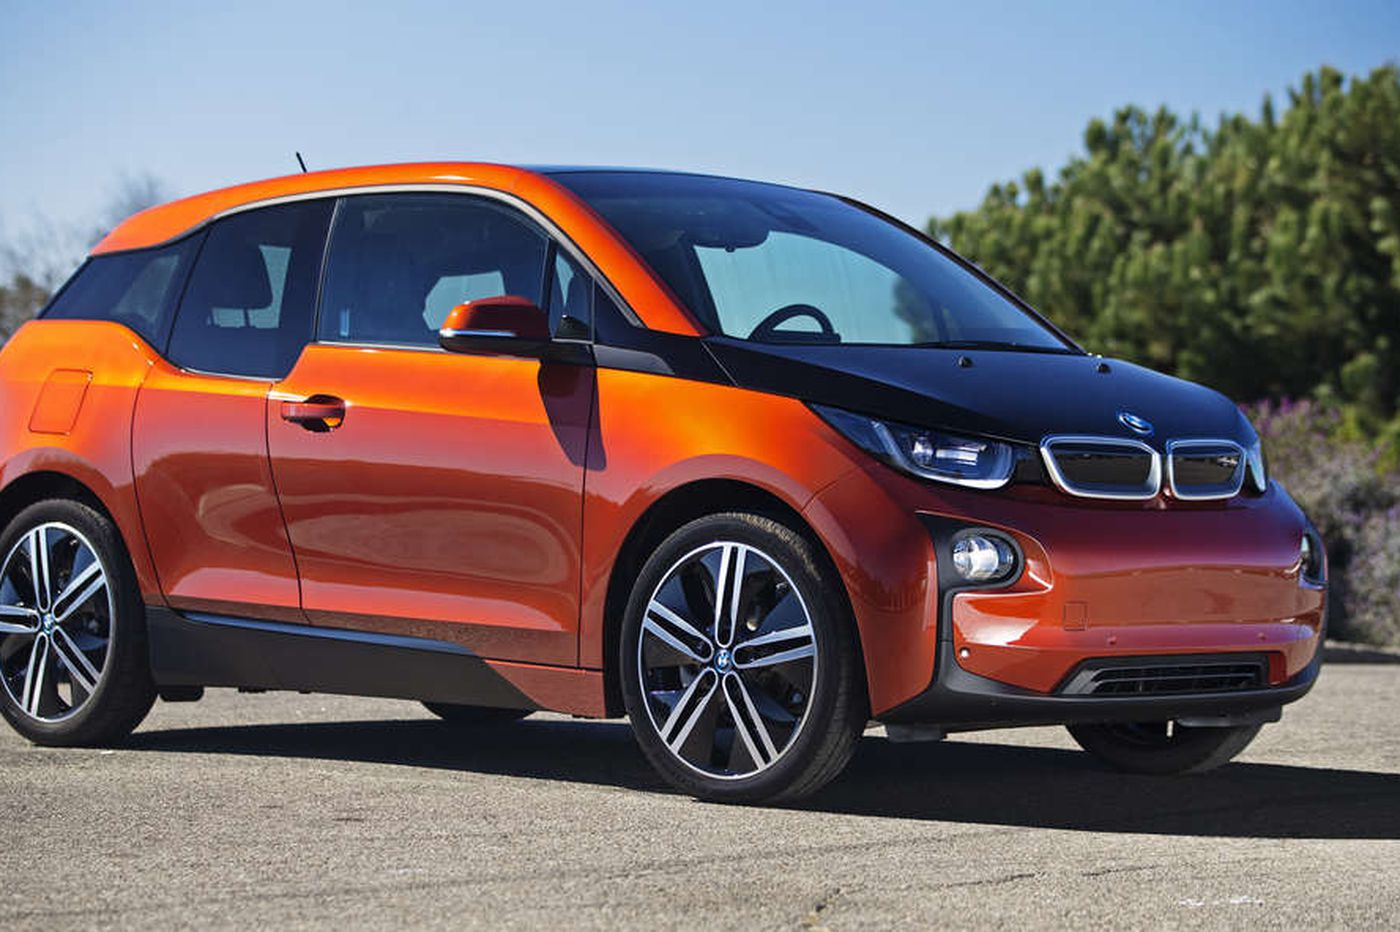 Driver's Seat: BMW has a stylish take on going green